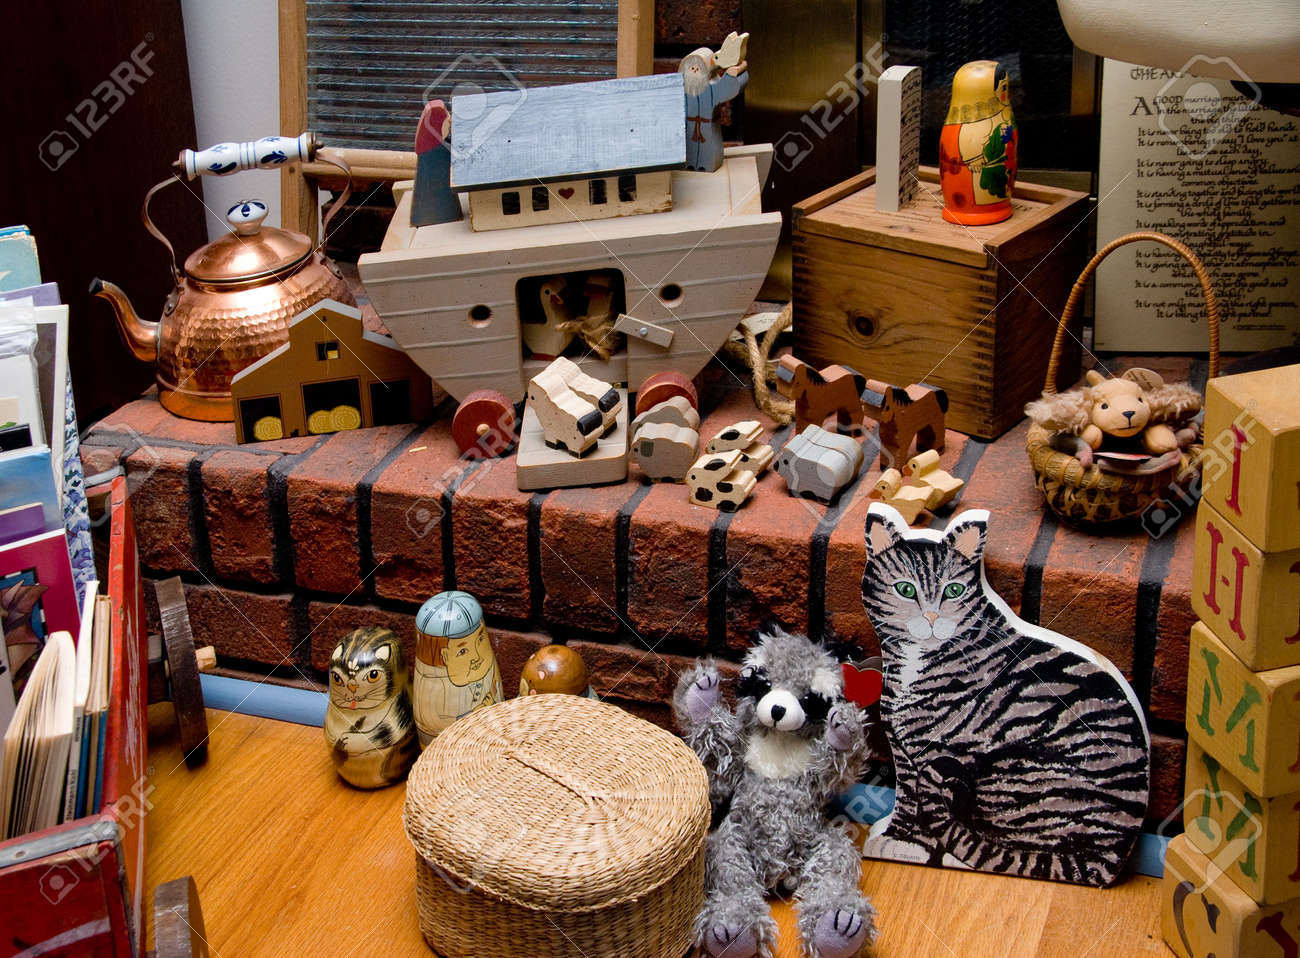 A Collection Of Antique Toys On A Fireplace Hearth. Stock Photo ...